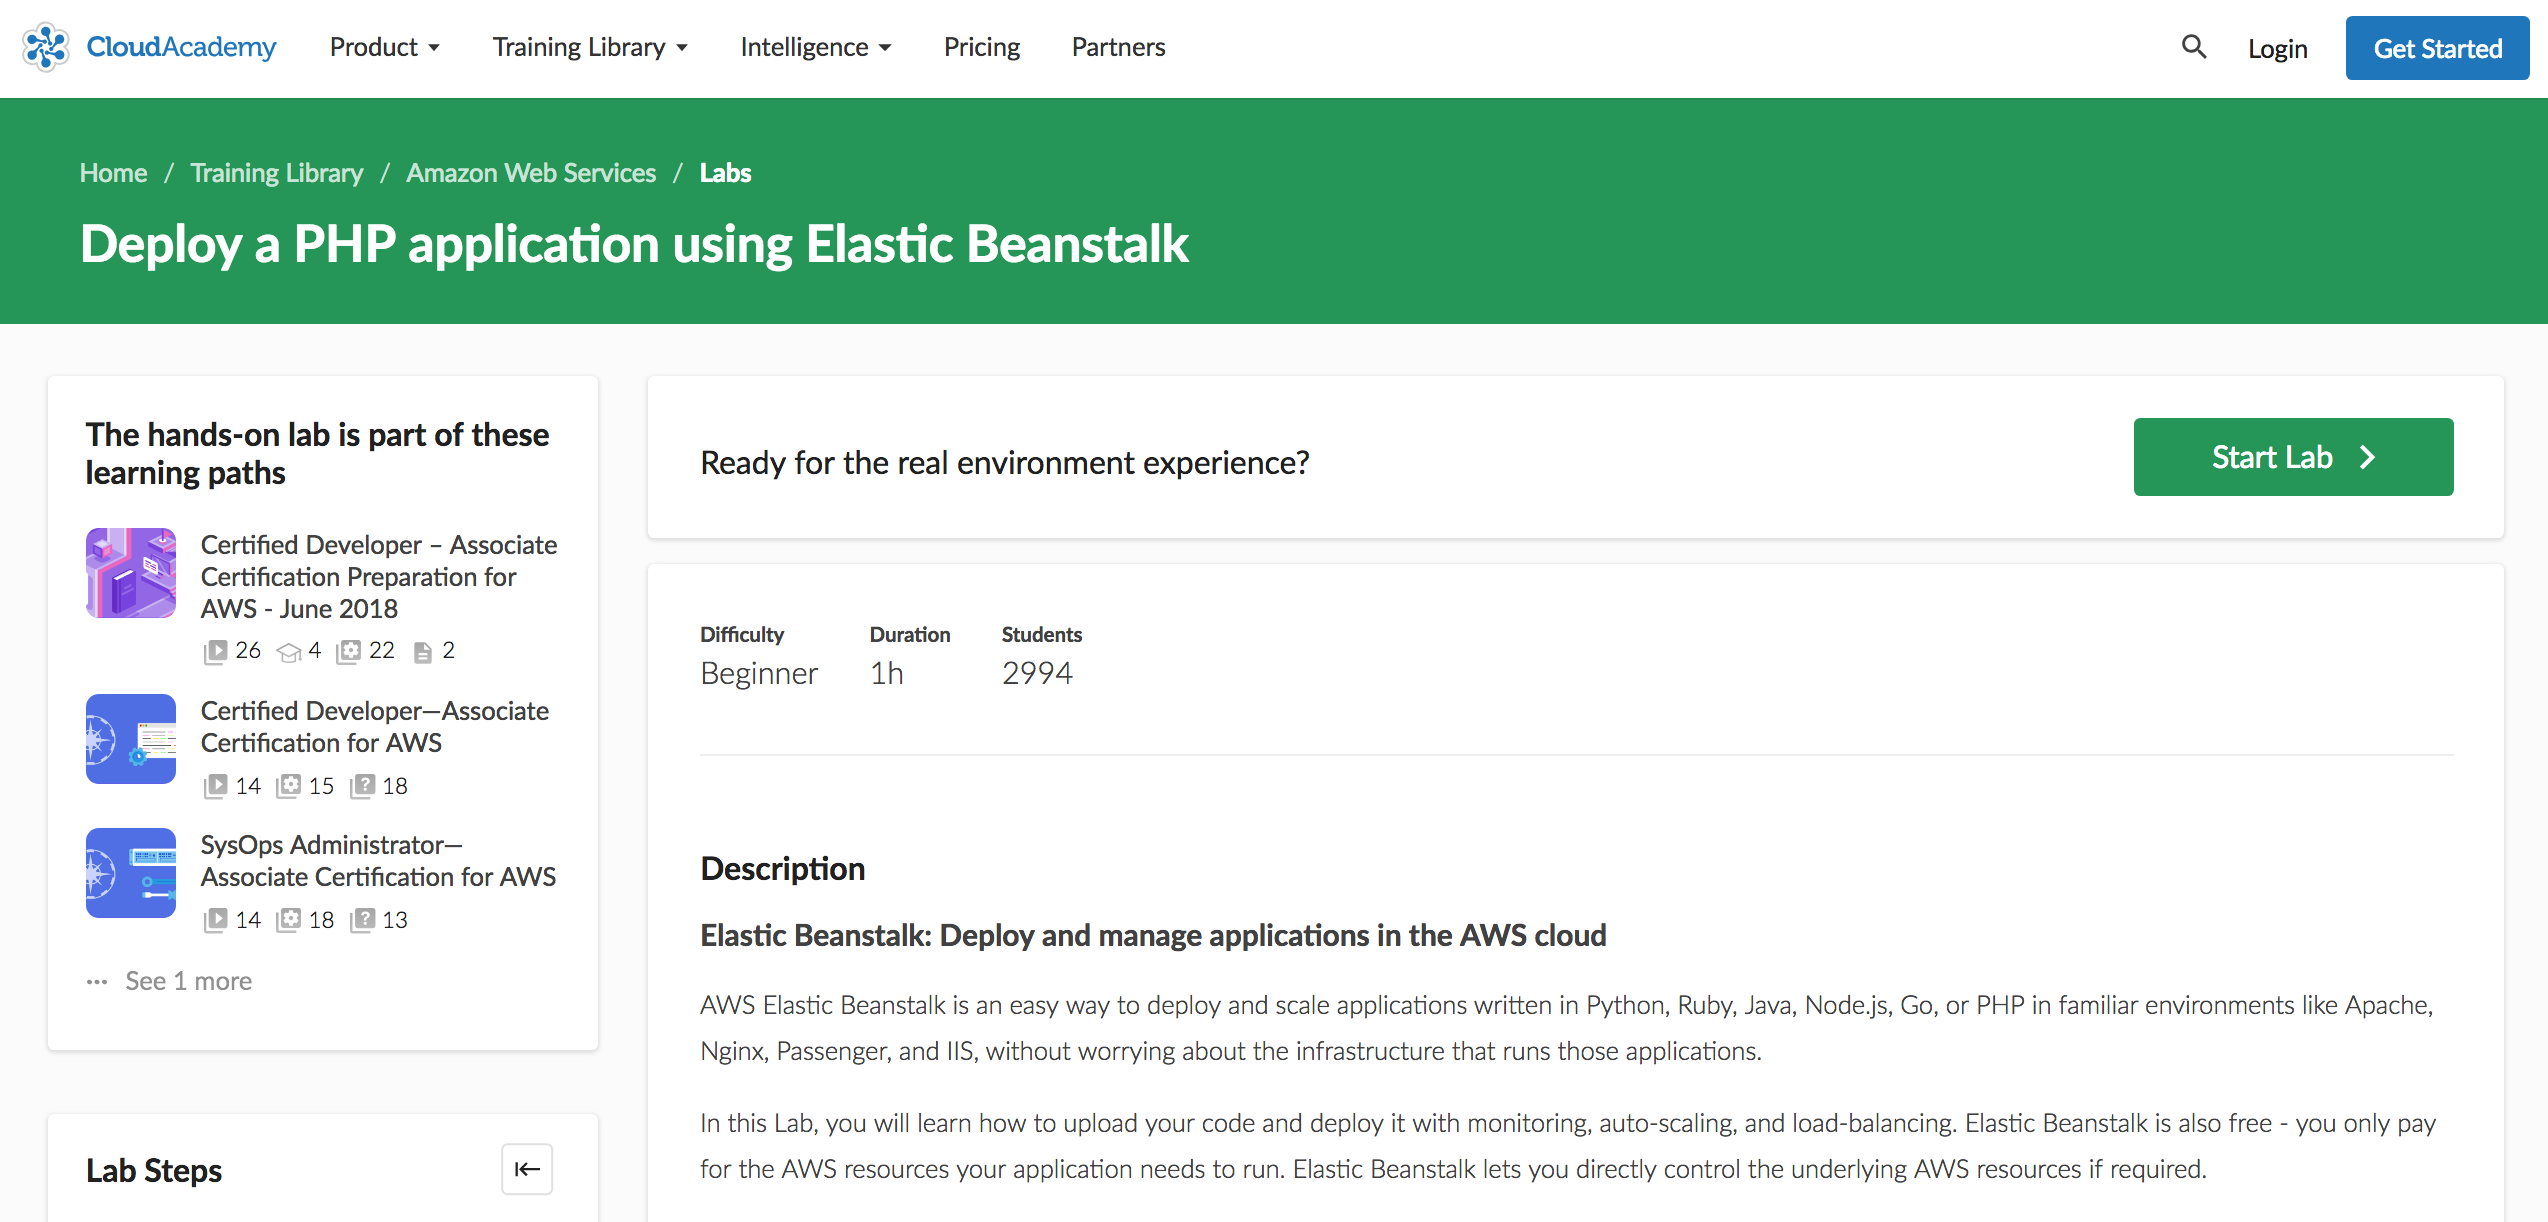 Deploy a PHP application using Elastic Beanstalk